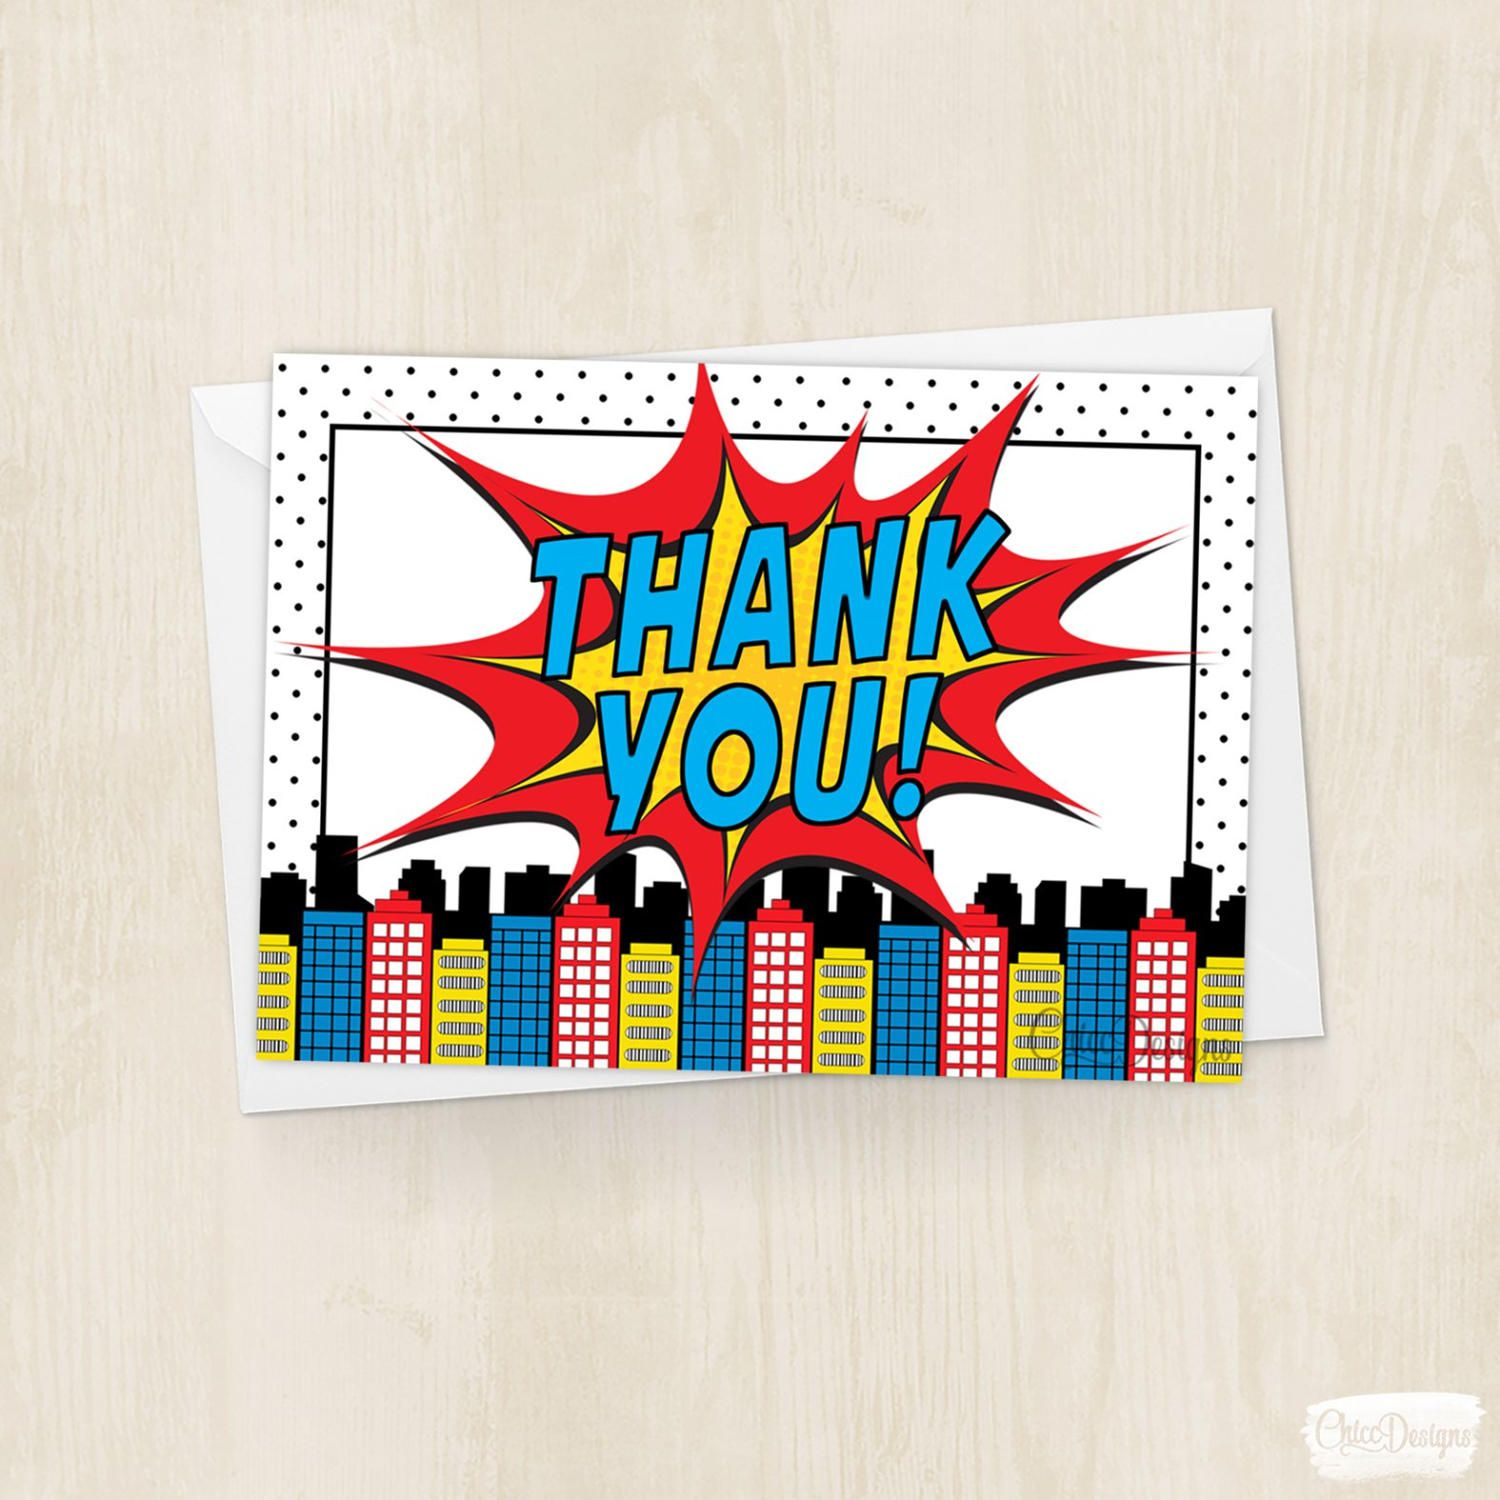 Superhero Thank You Card - Bubbles - Comic - Superhero Comic - Super Power - Birthday - Skyline - Thank You Card - Instant Download by ChiccDesigns on Etsy